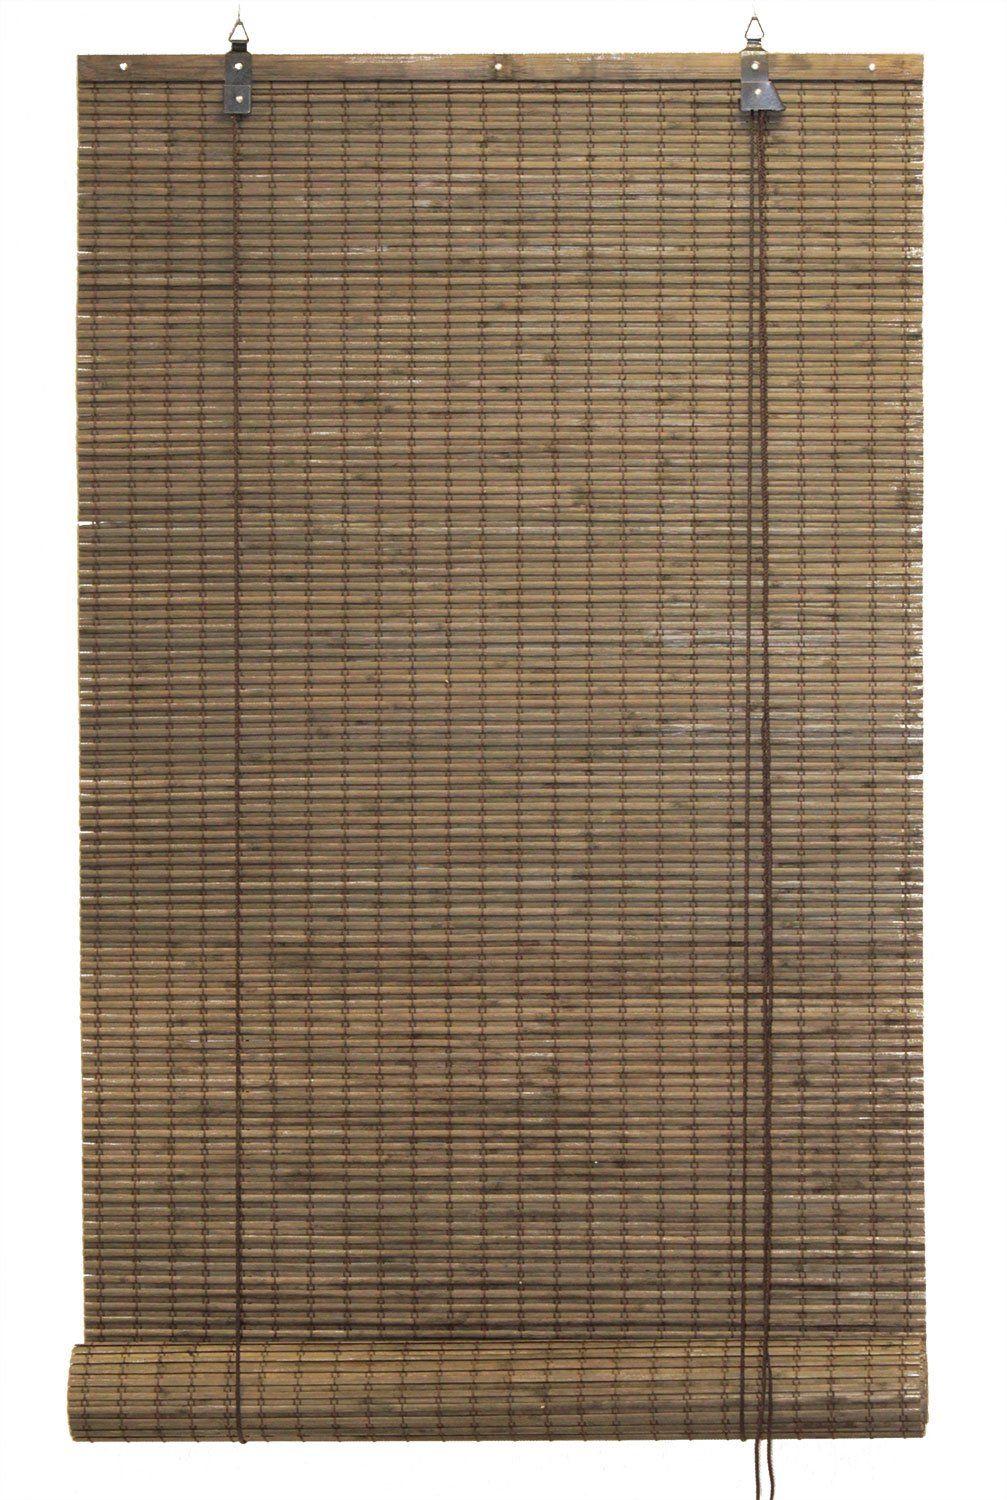 Bamboo Flat-weave Sun-filtering Roll Up Blind (24x66 Inch, Amber Honey) Seta Direct BB6810